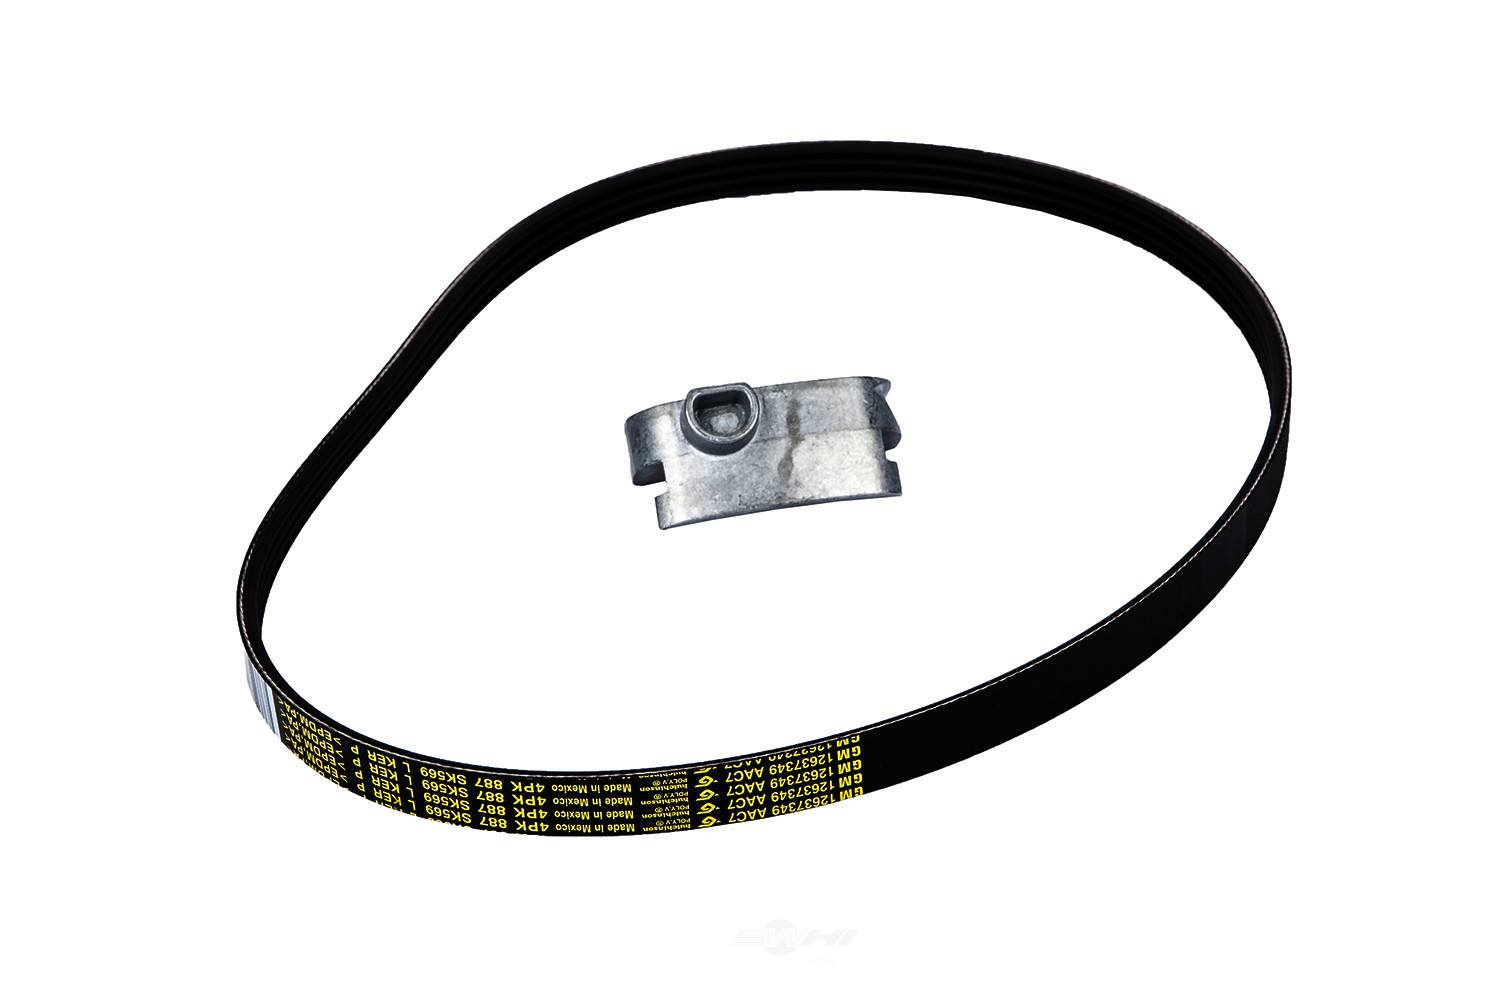 ACDELCO GM ORIGINAL EQUIPMENT - Accessory Drive Belt Kit (Air Conditioning) - DCB 12658178